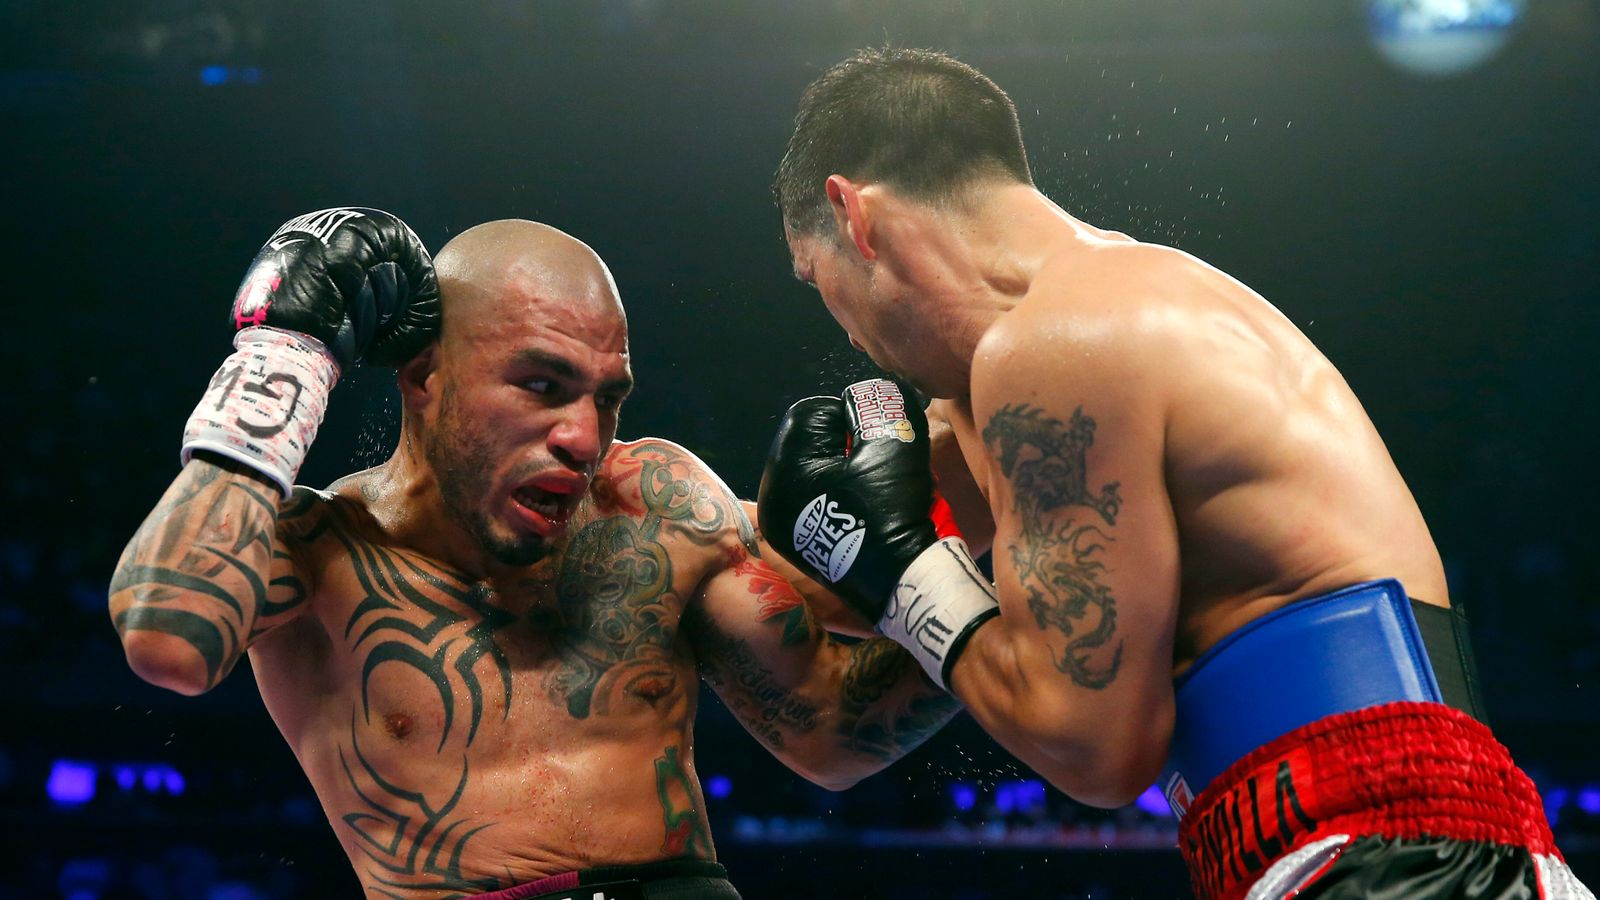 Martinez cotto betting odds spread betting sports strategies nw